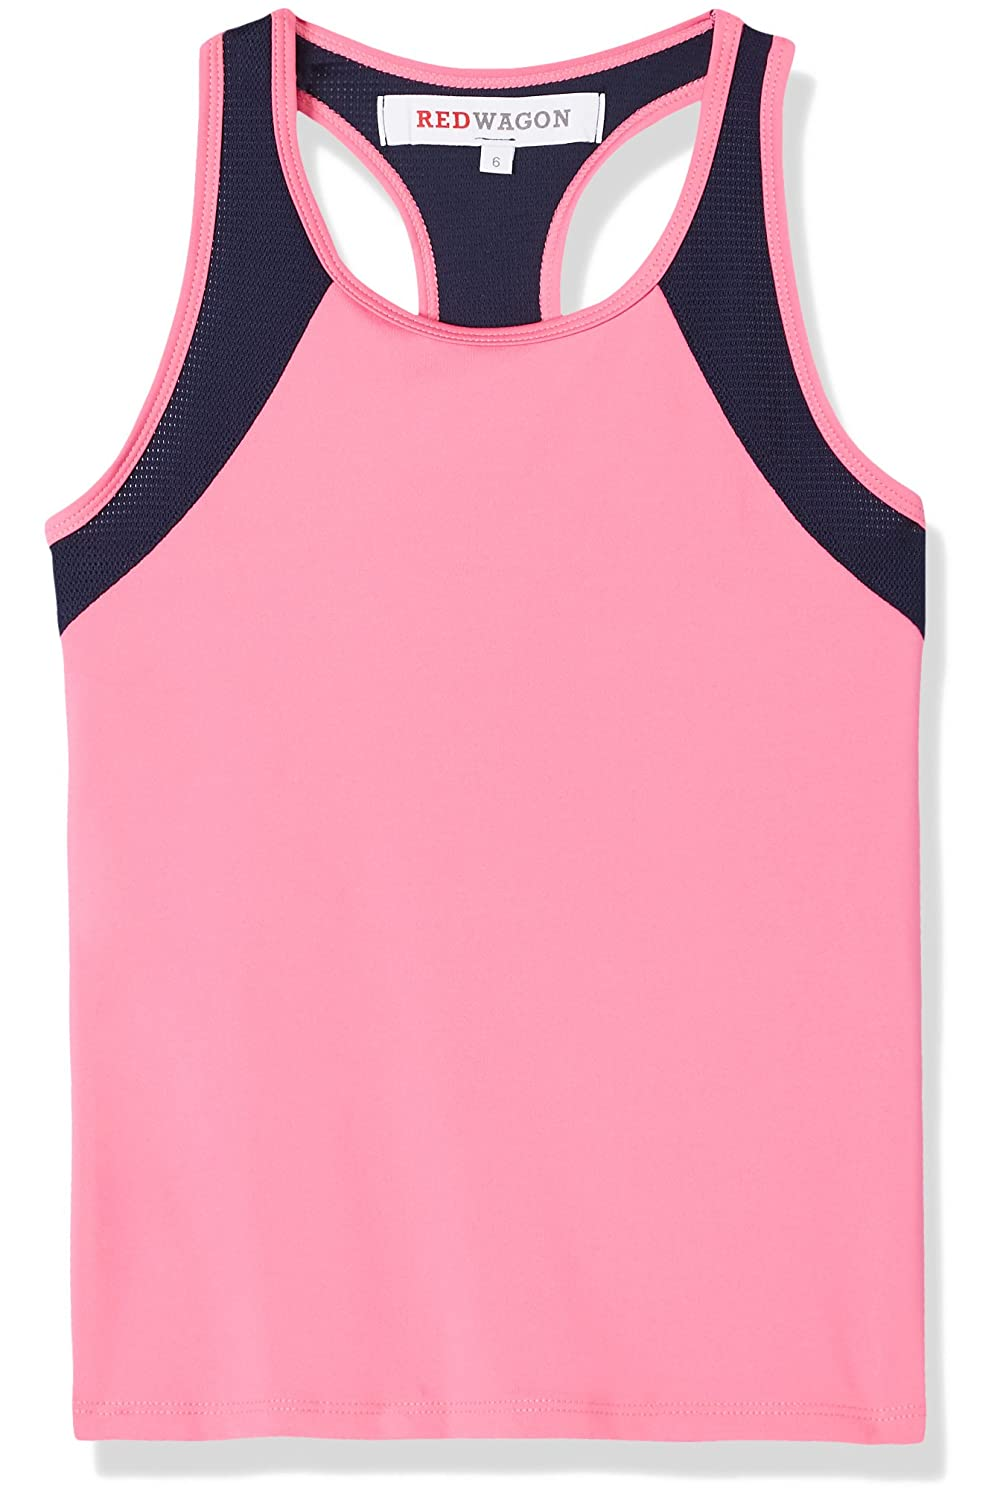 RED WAGON Girl's Contrast Colour Mesh Sports Vest SFP1-G1